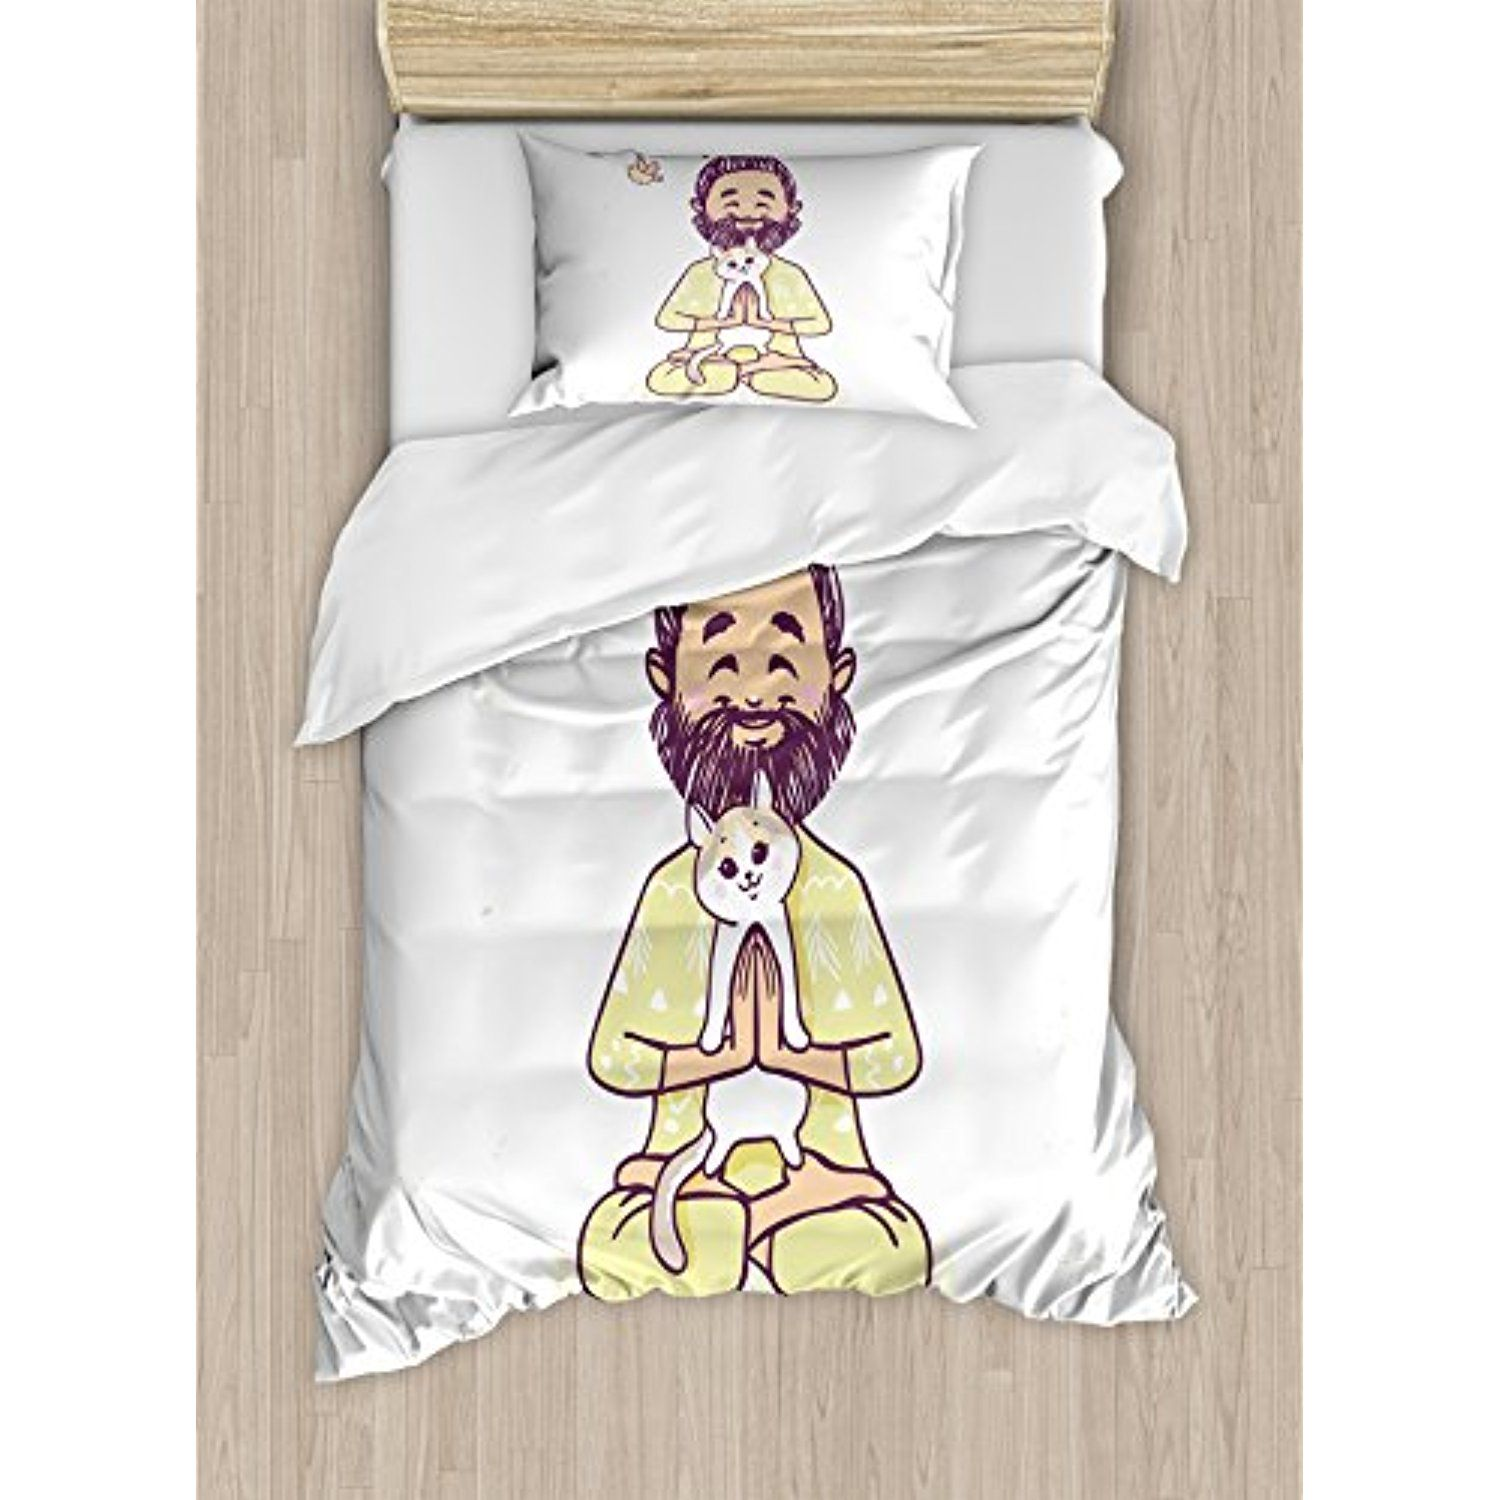 Funny twin size duvet cover set by ambesonne positive man with cat